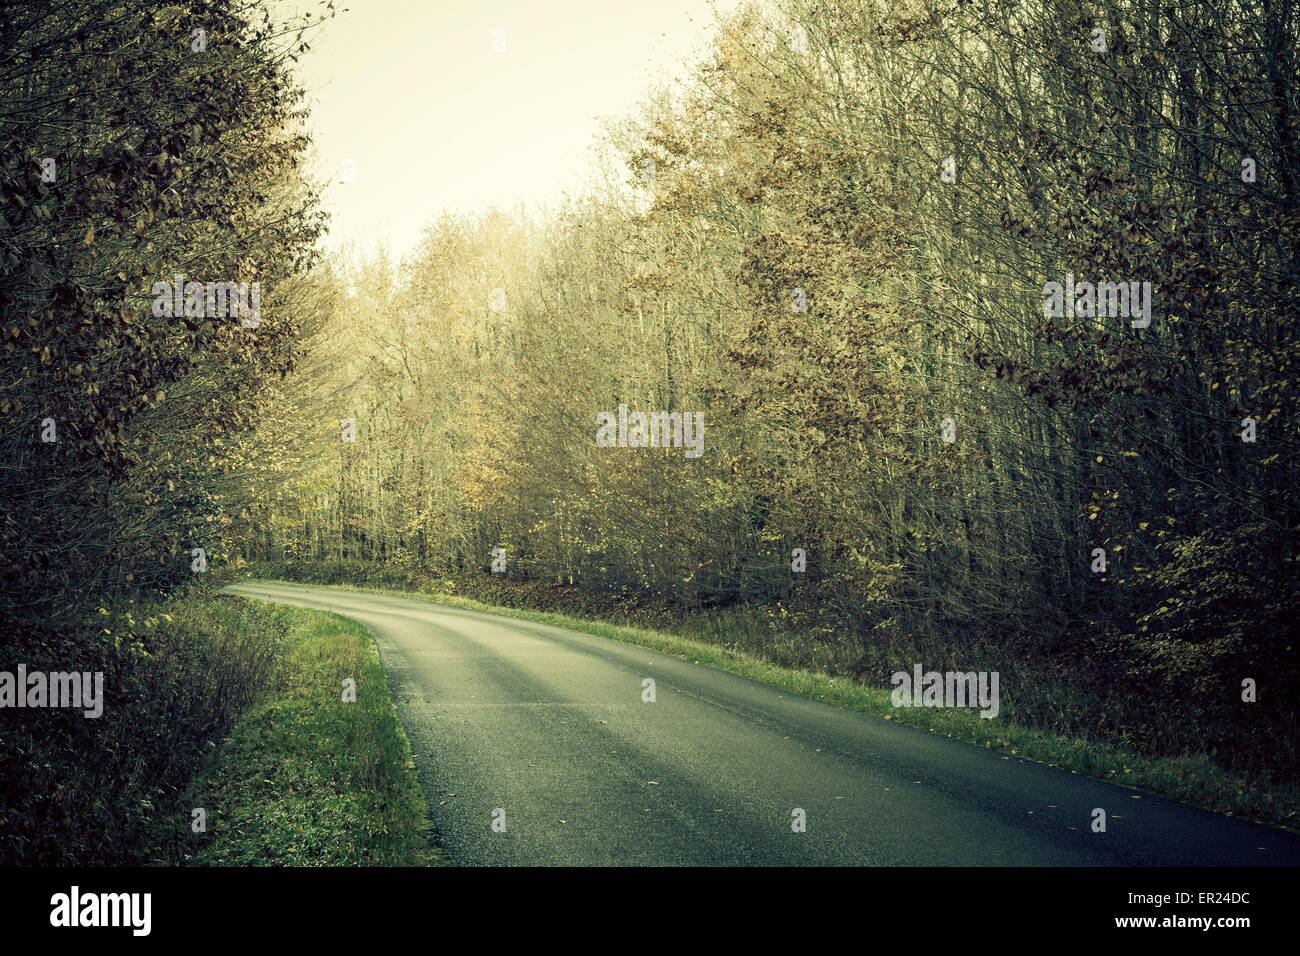 road wood trees Indre-et-Loire France - Stock Image